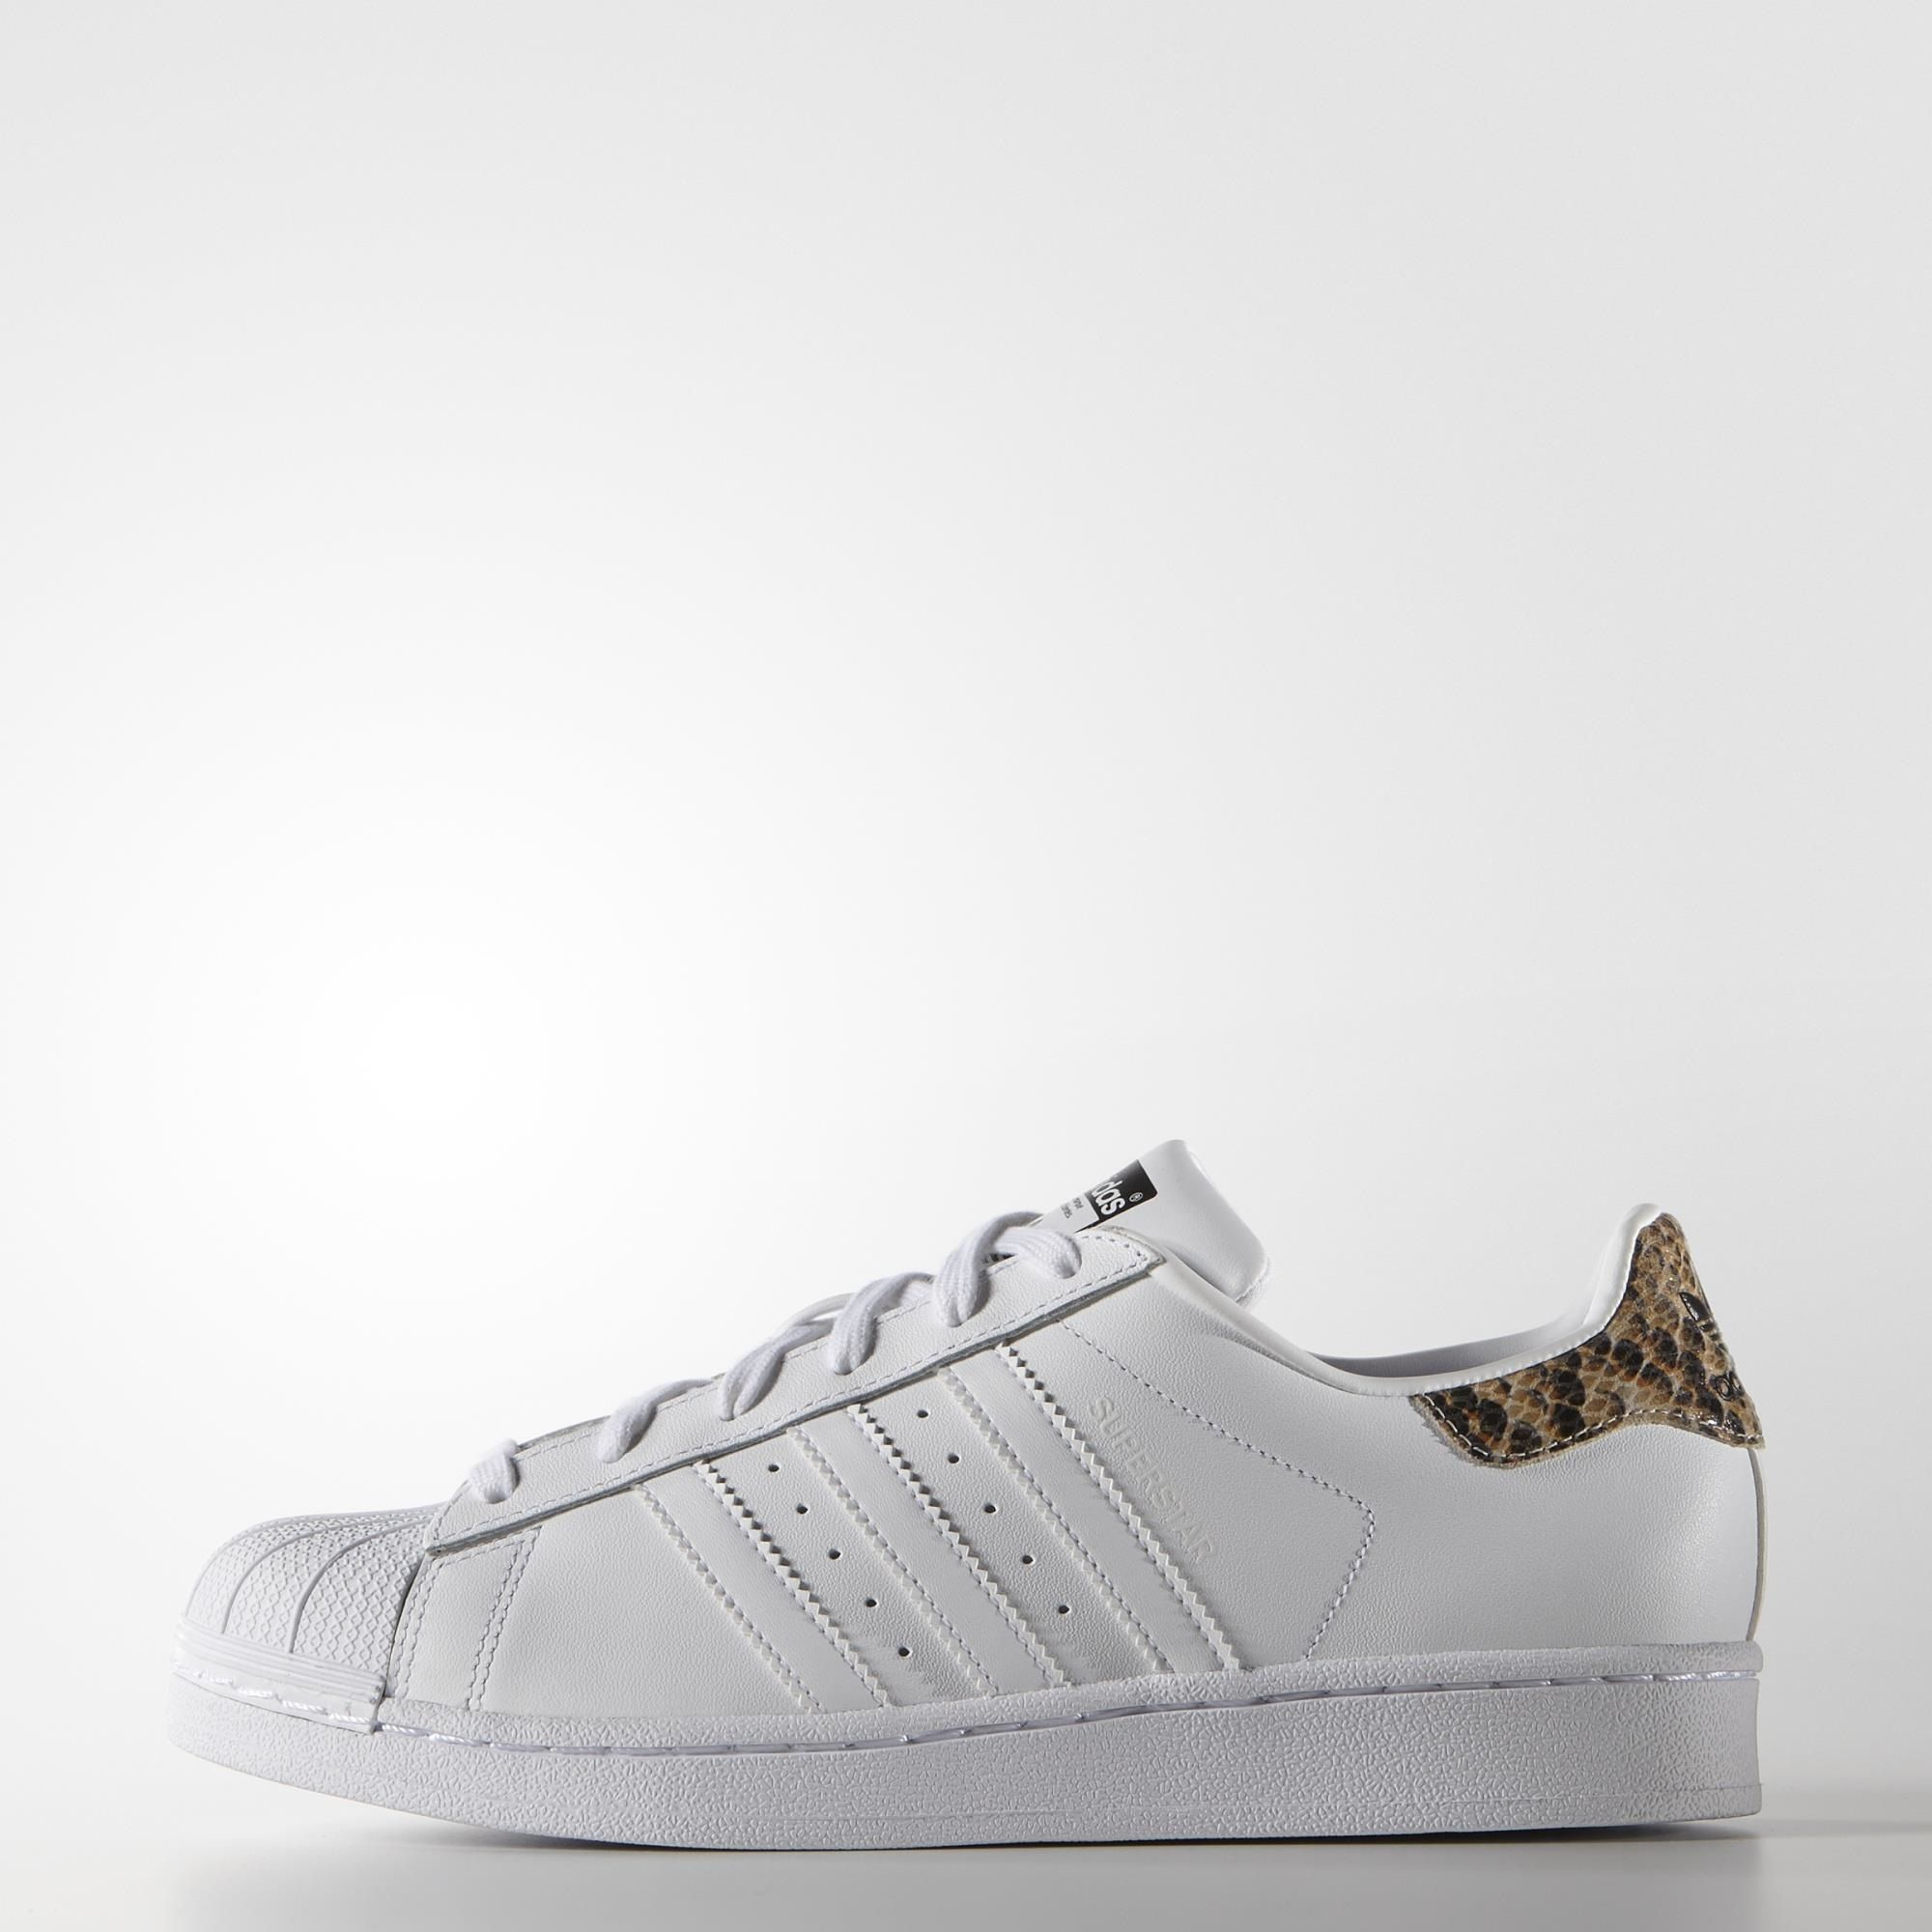 adidas superstar blancas y serpiente